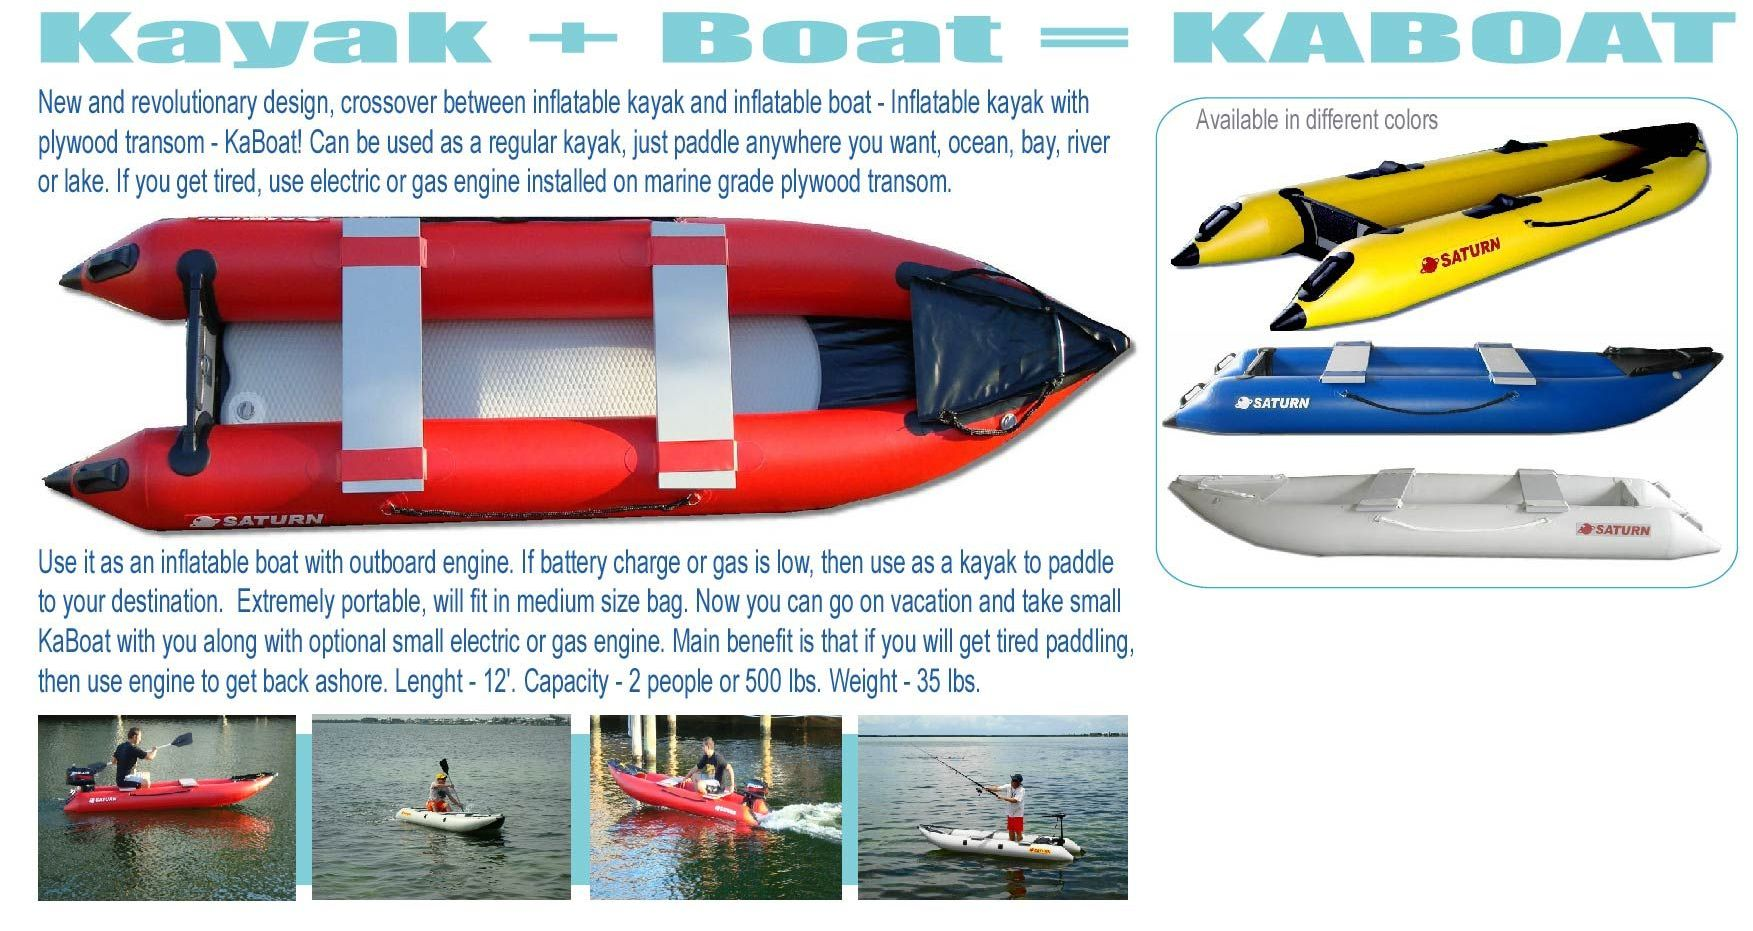 One of first KaBoat ads back from 2006